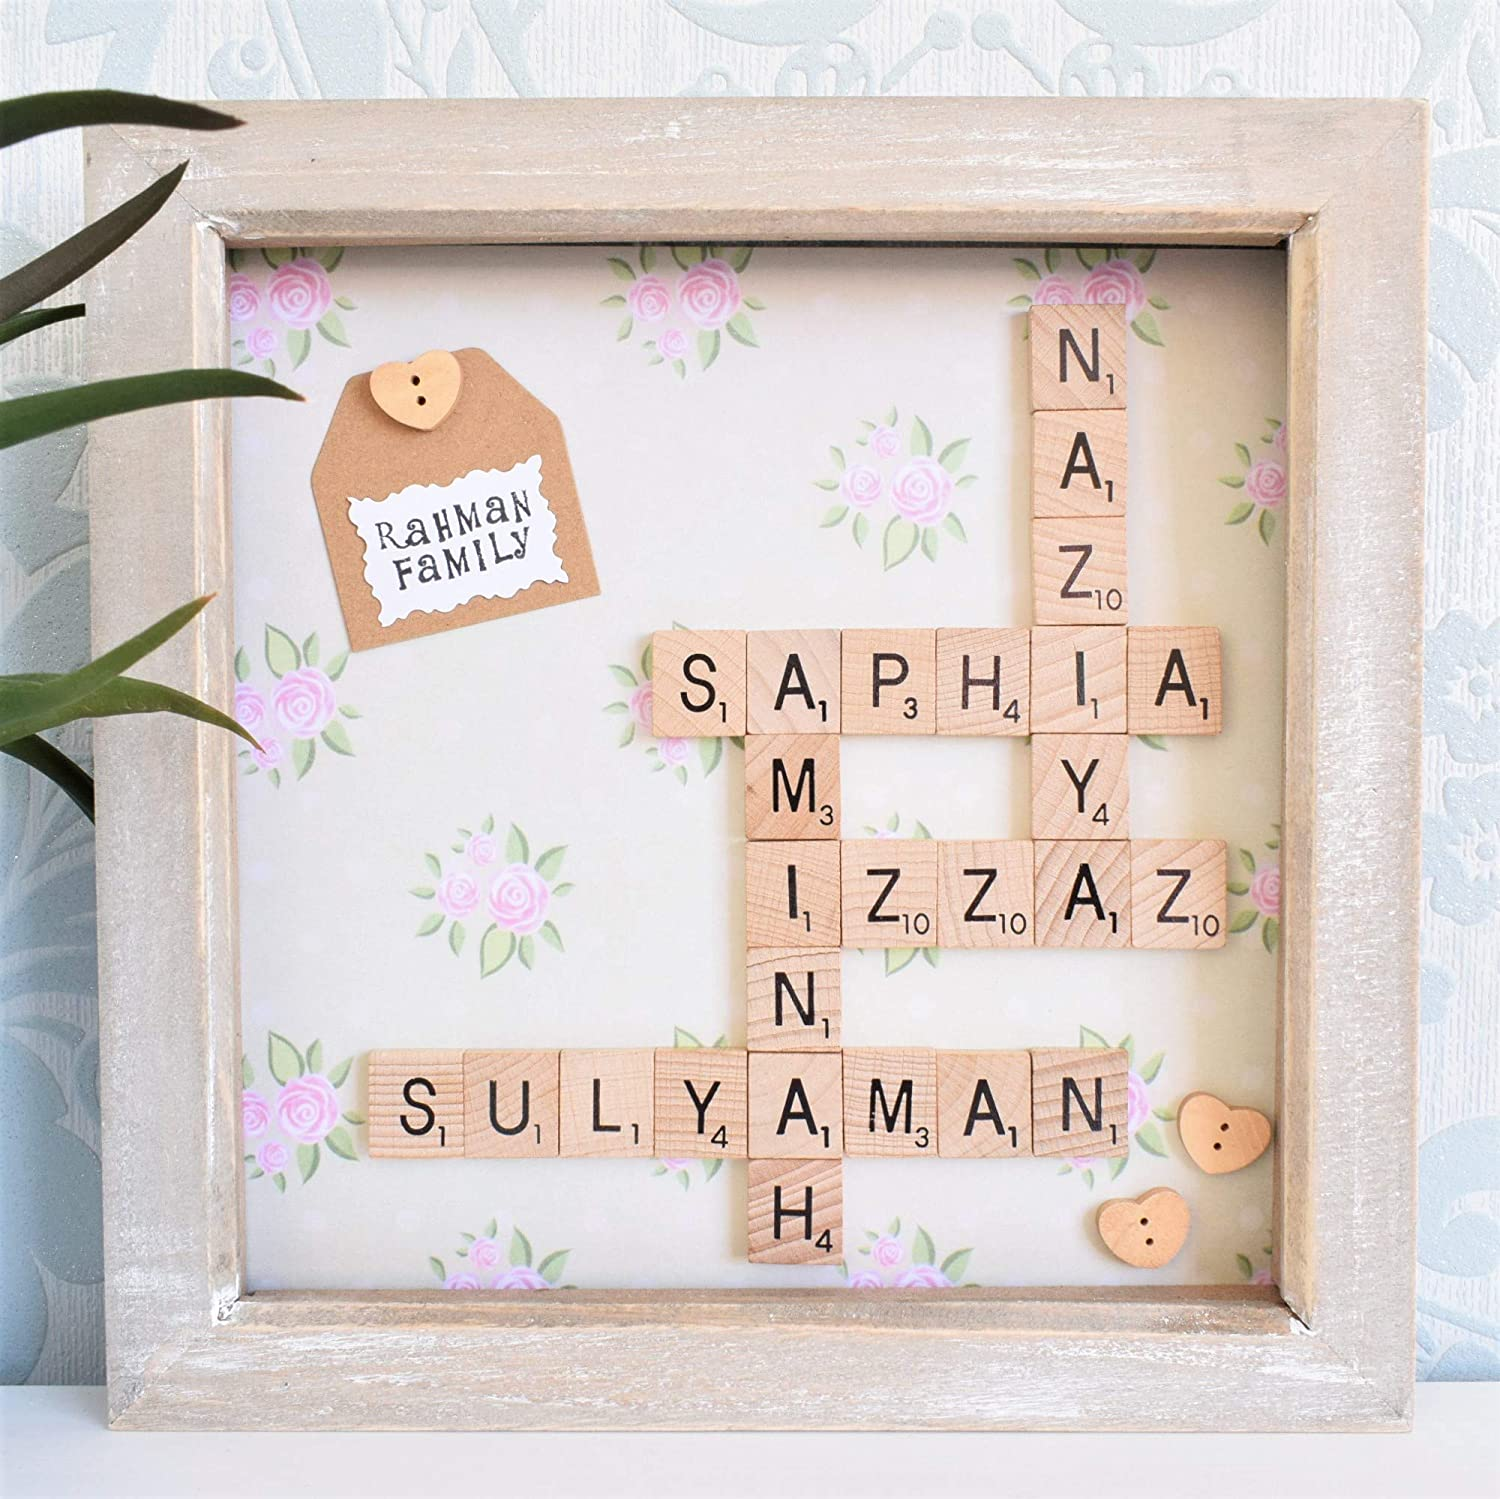 Scrabble Family Frame Up To 20 Names Gift Christmas All Occasions